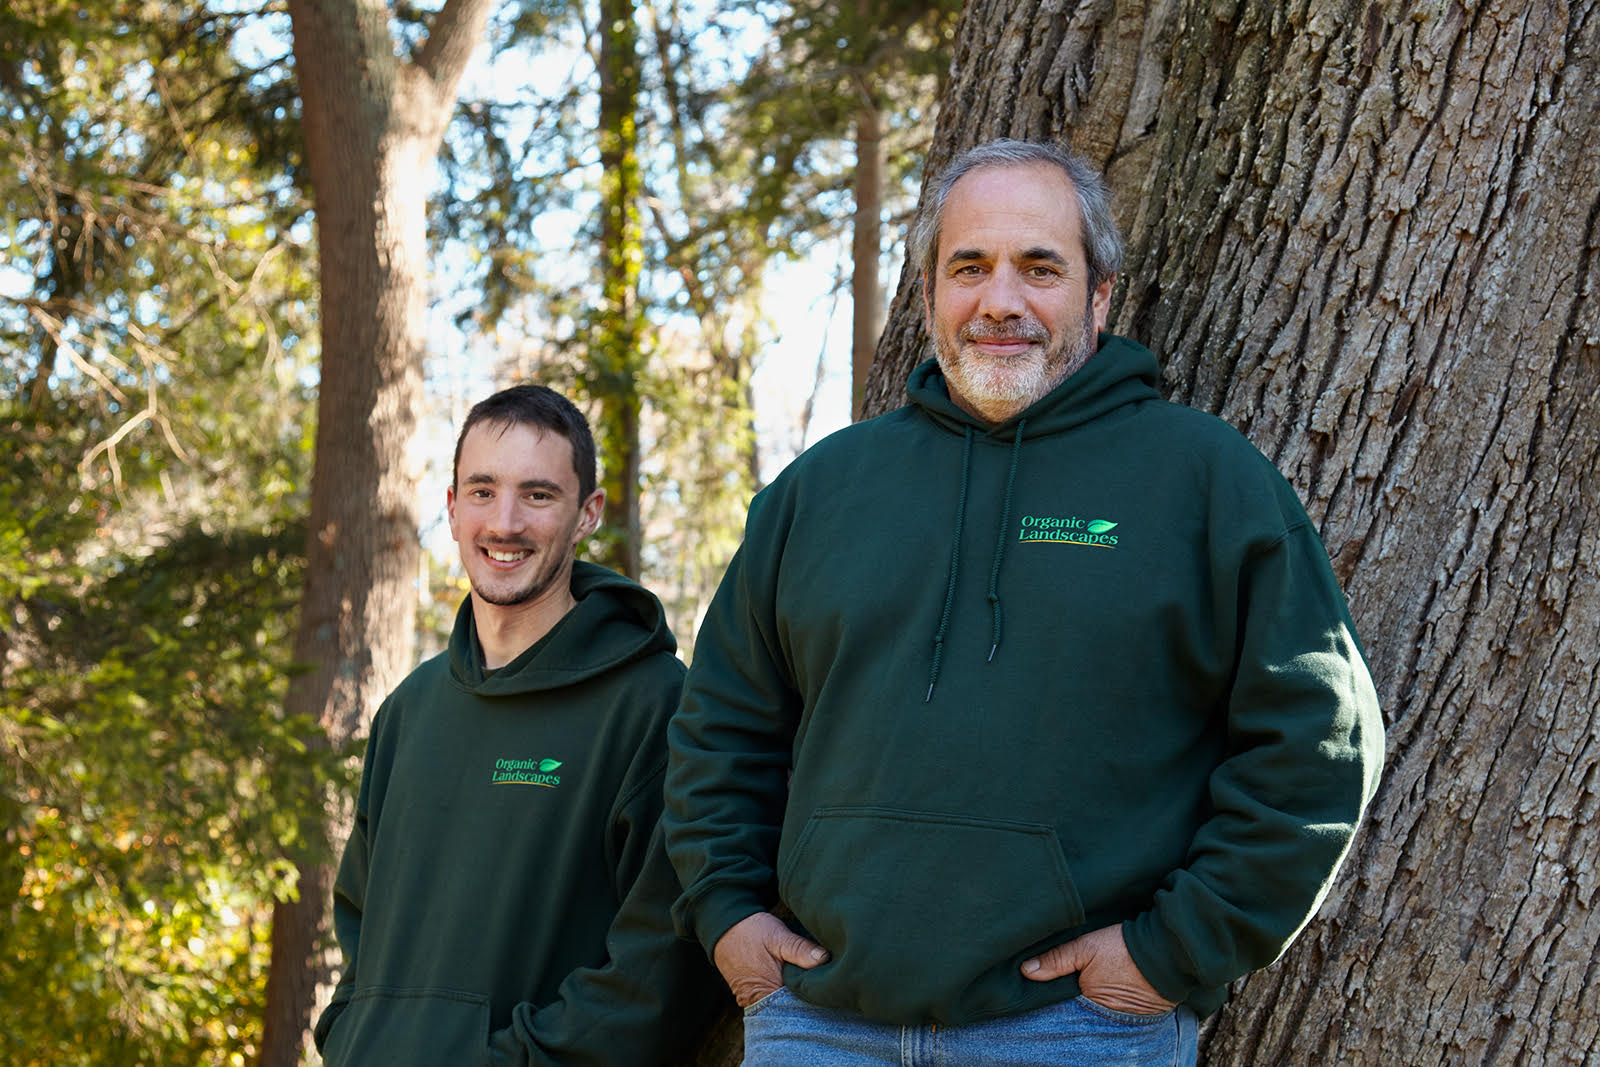 peter deluca and son wearing organic landscapes sweatshirts bedford westchester county ny